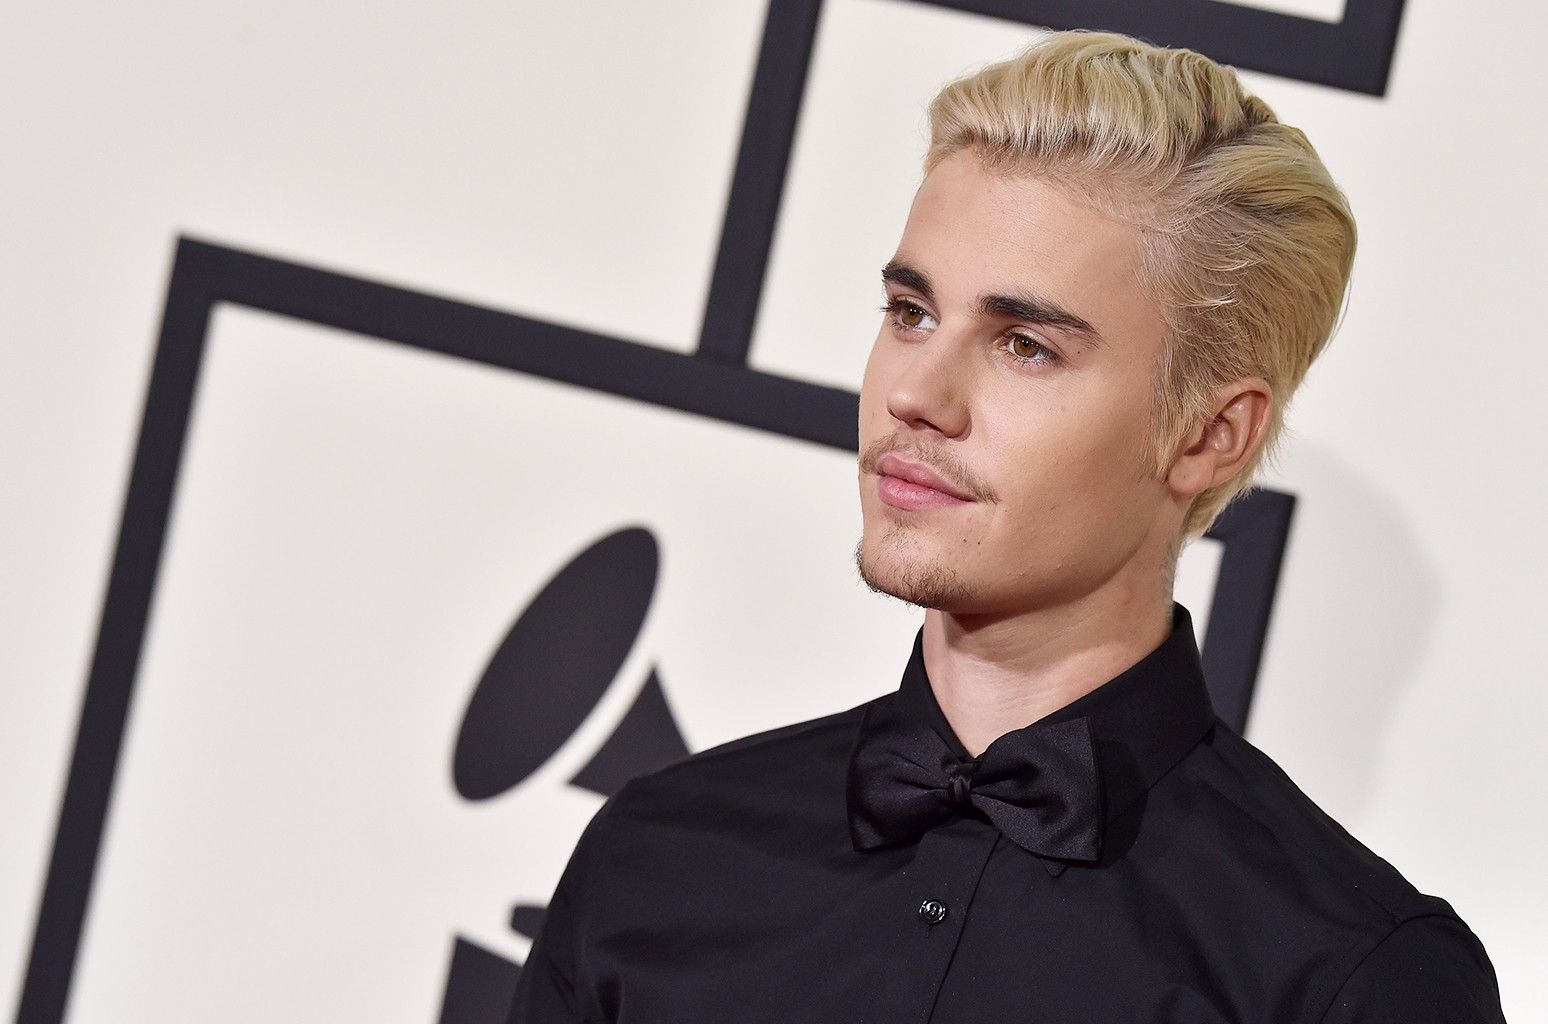 Justin Bieber arrives at The 58th Grammy Awards